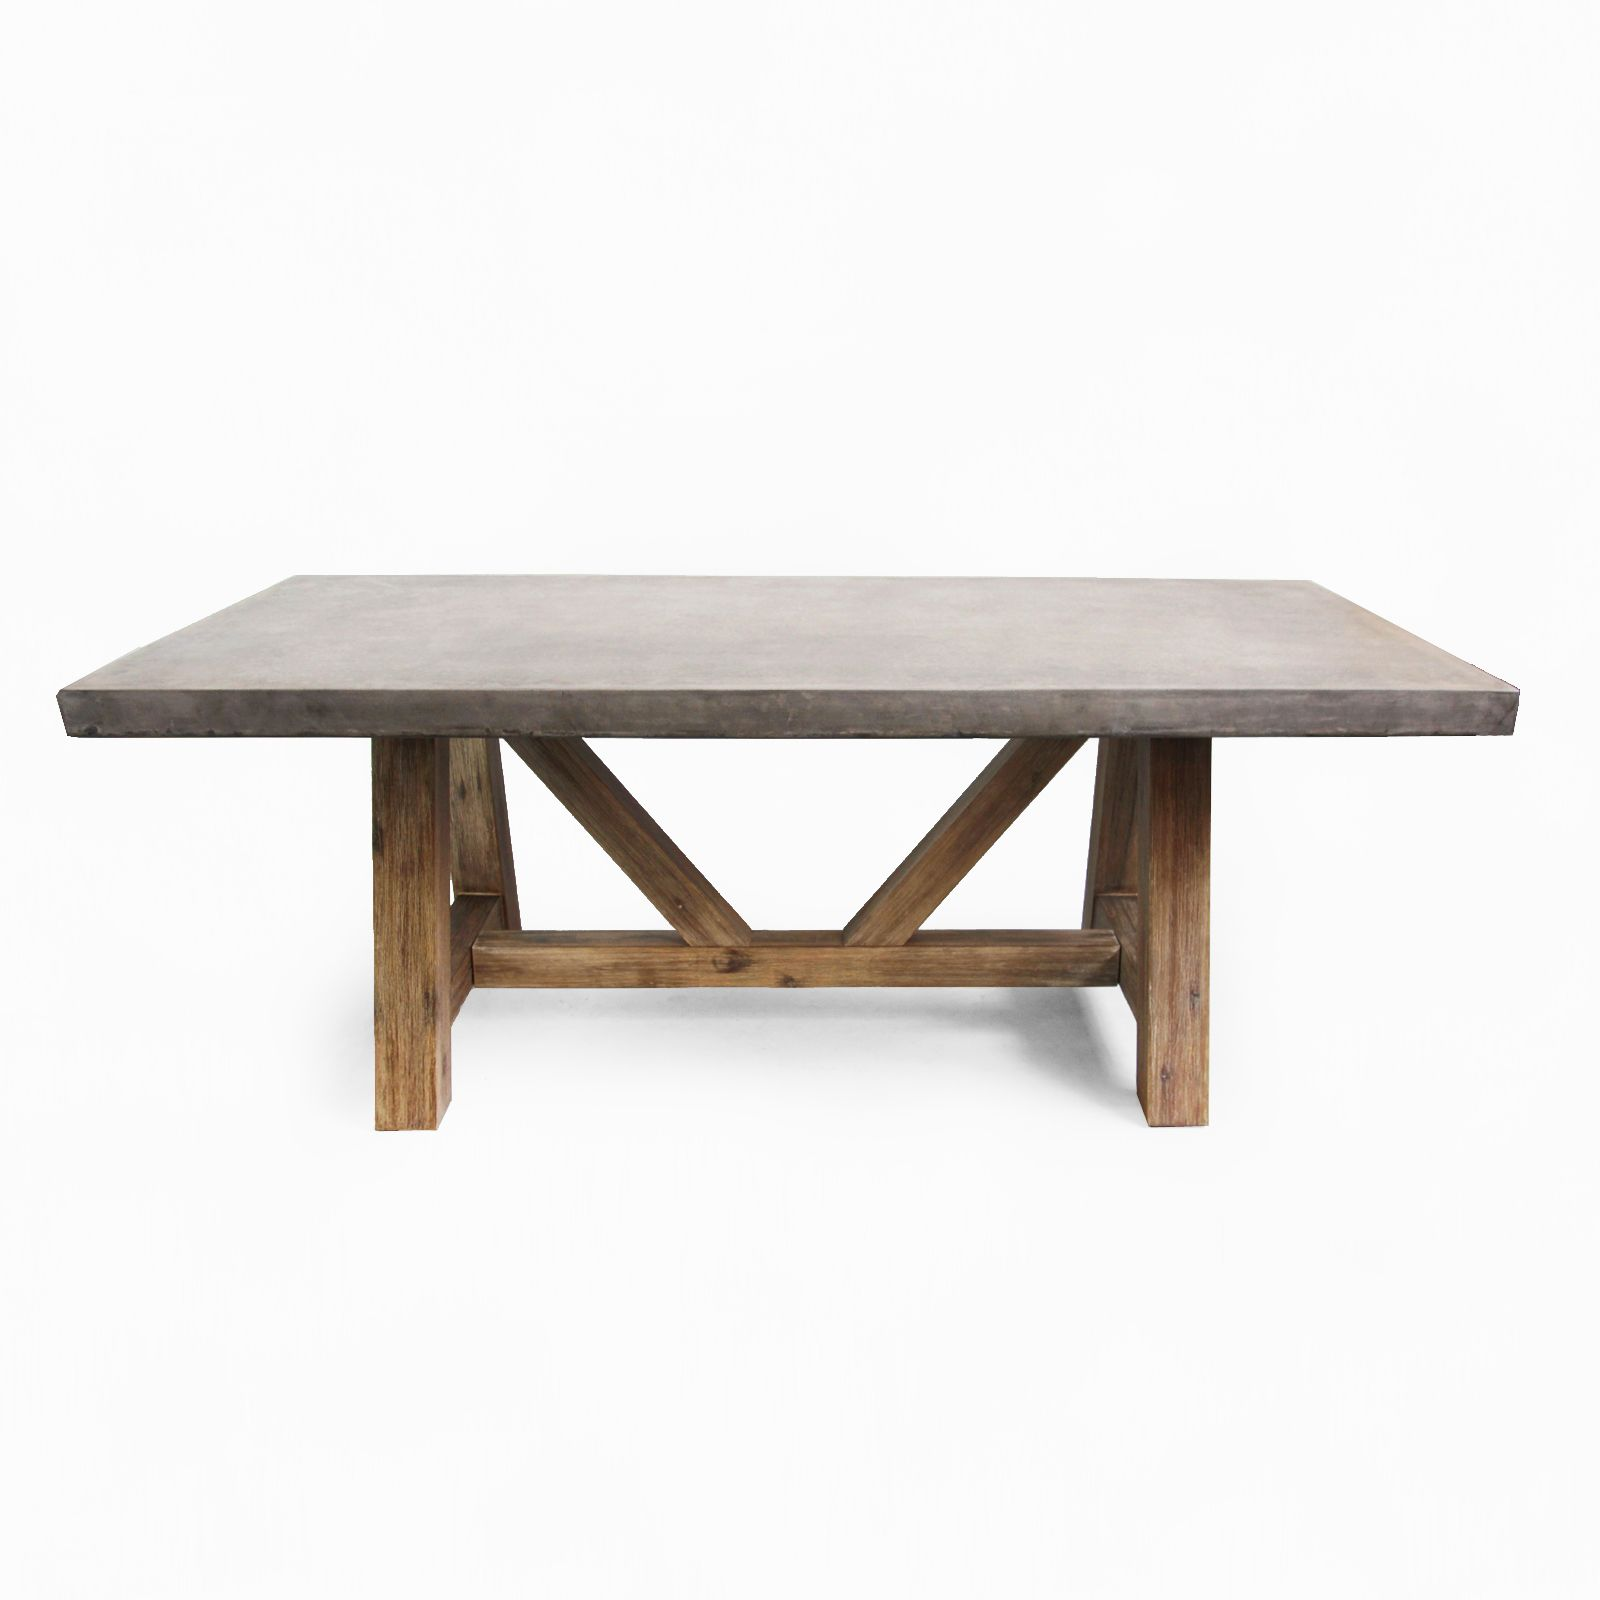 Modern Outdoor Cement Resin Dining Table Top With 4 Thick Post